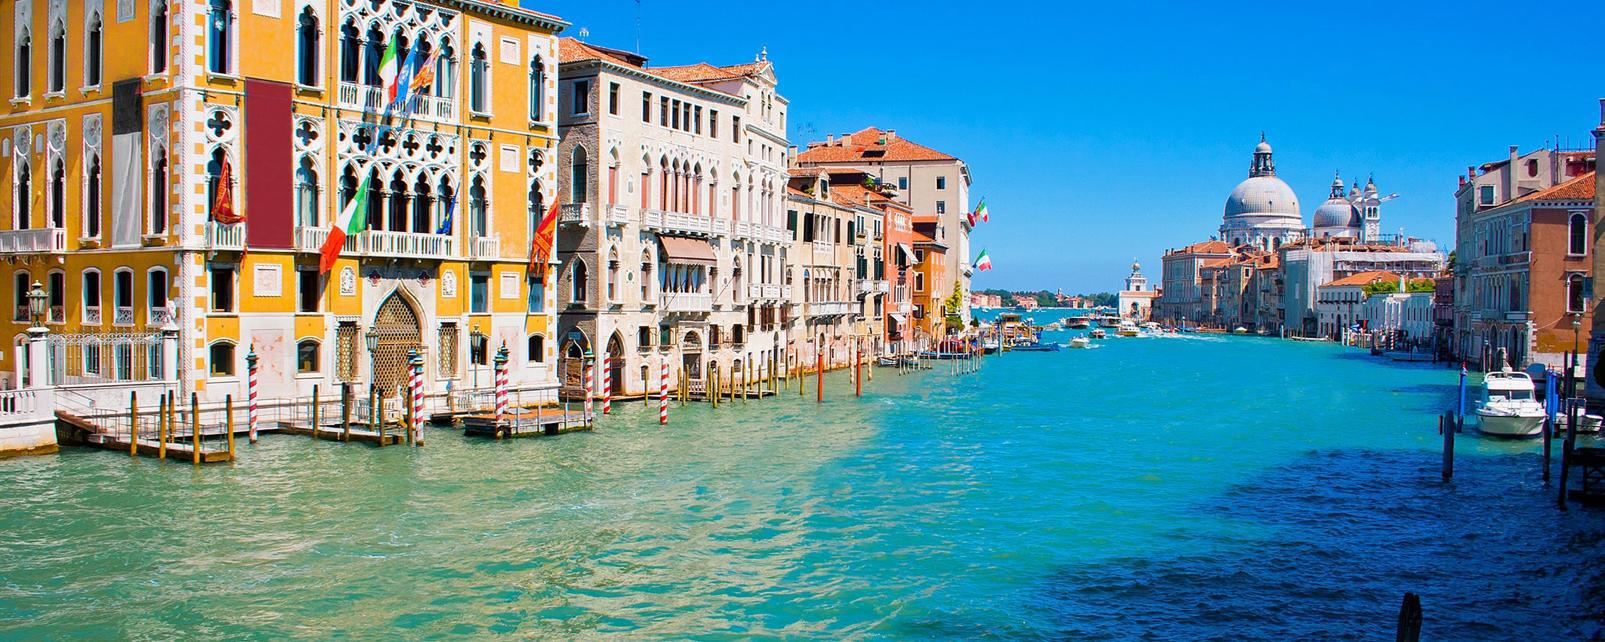 Location Appartement A Venise Italie